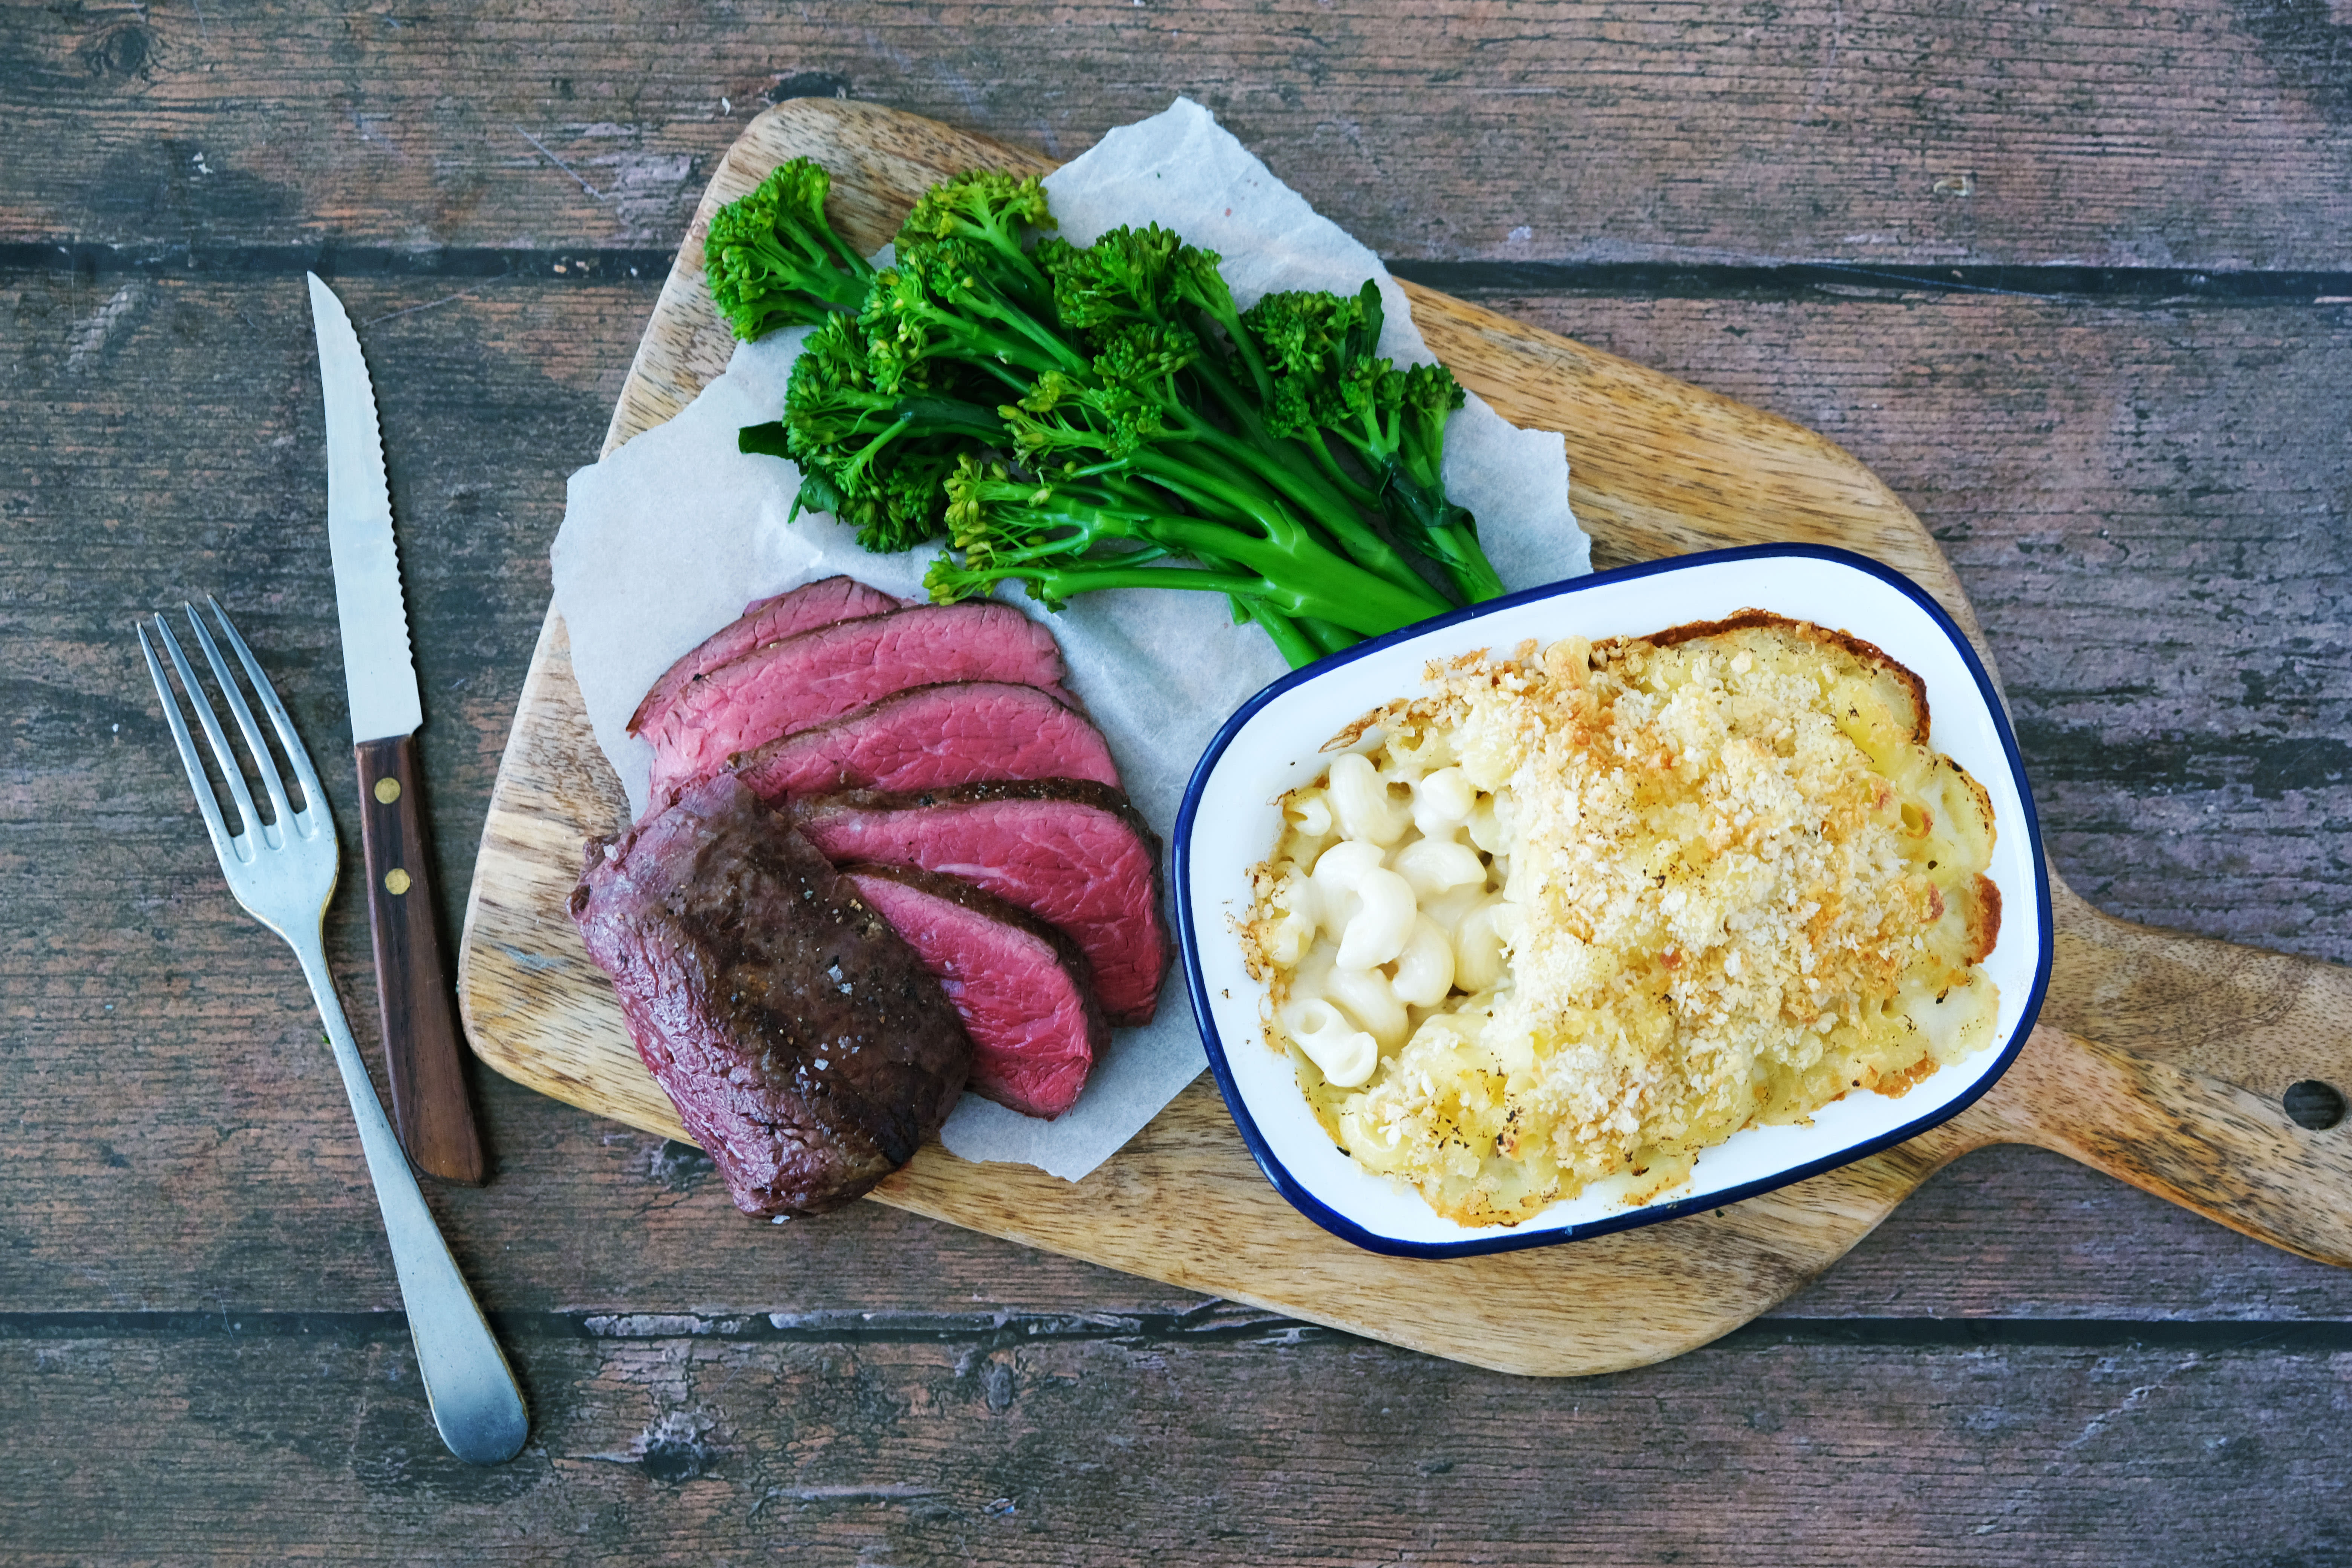 Fillet Steak with 3 Cheese Truffle Macaroni Bake and Tenderstem Broccoli